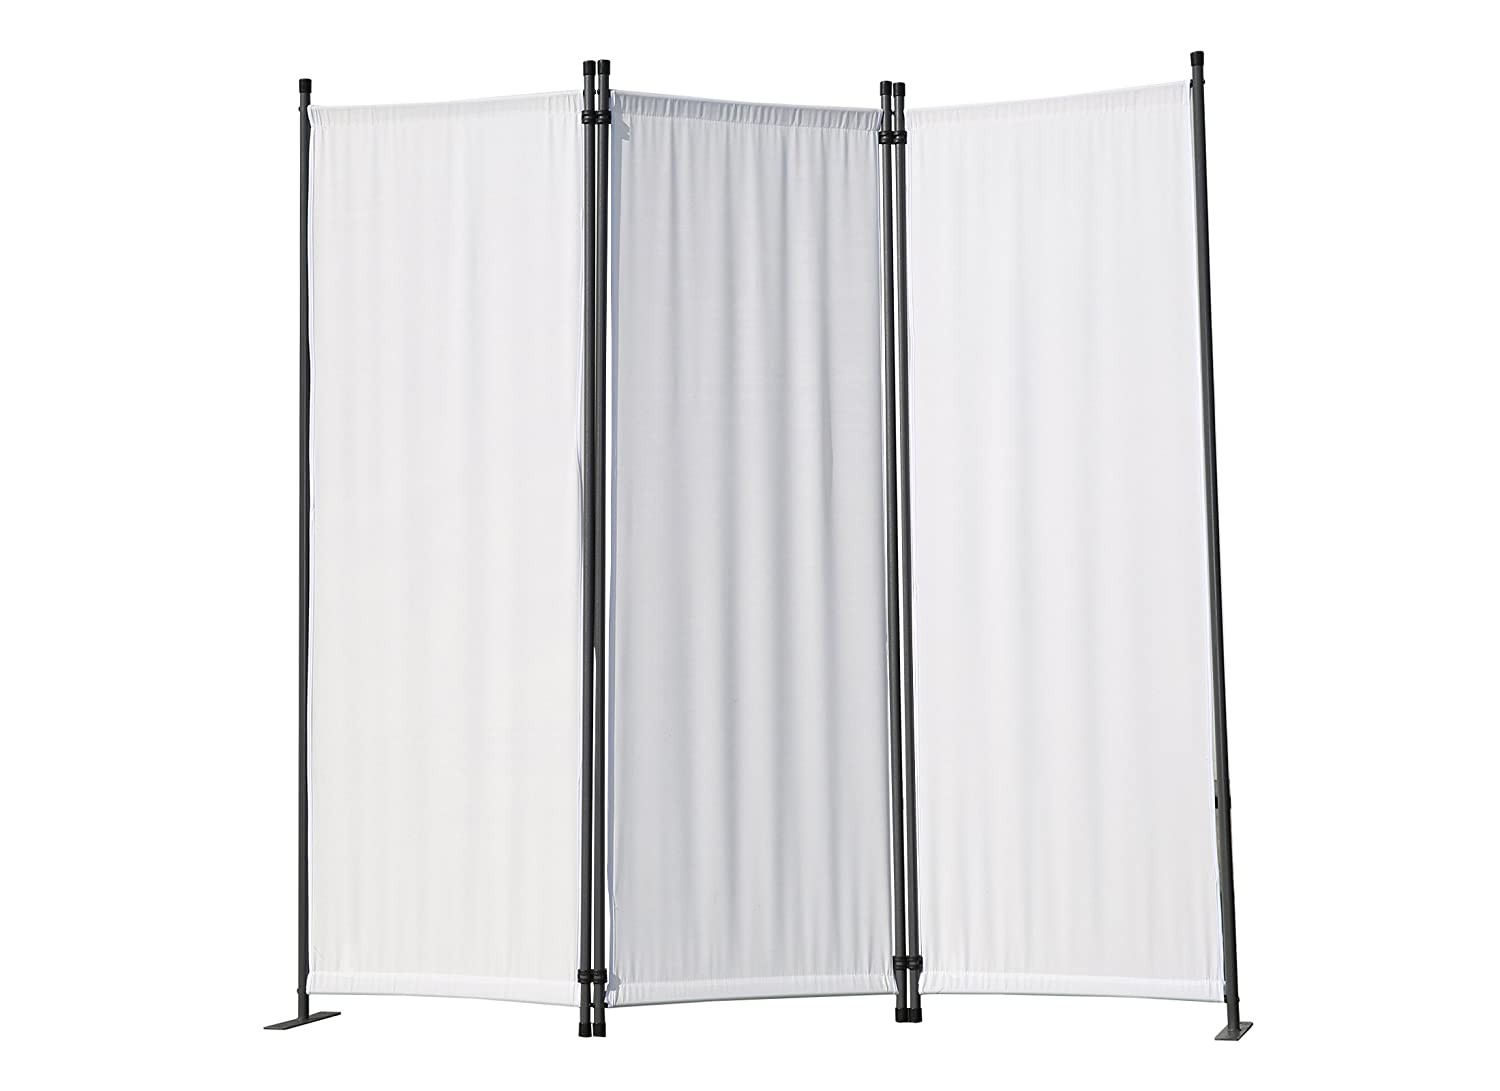 Angel Living Protective Screens Room Divider Screen Panel Folding Room Partition Wall Furniture Outdoor Screens for Patio Privacy (3-piece 169x165cm, Nature)